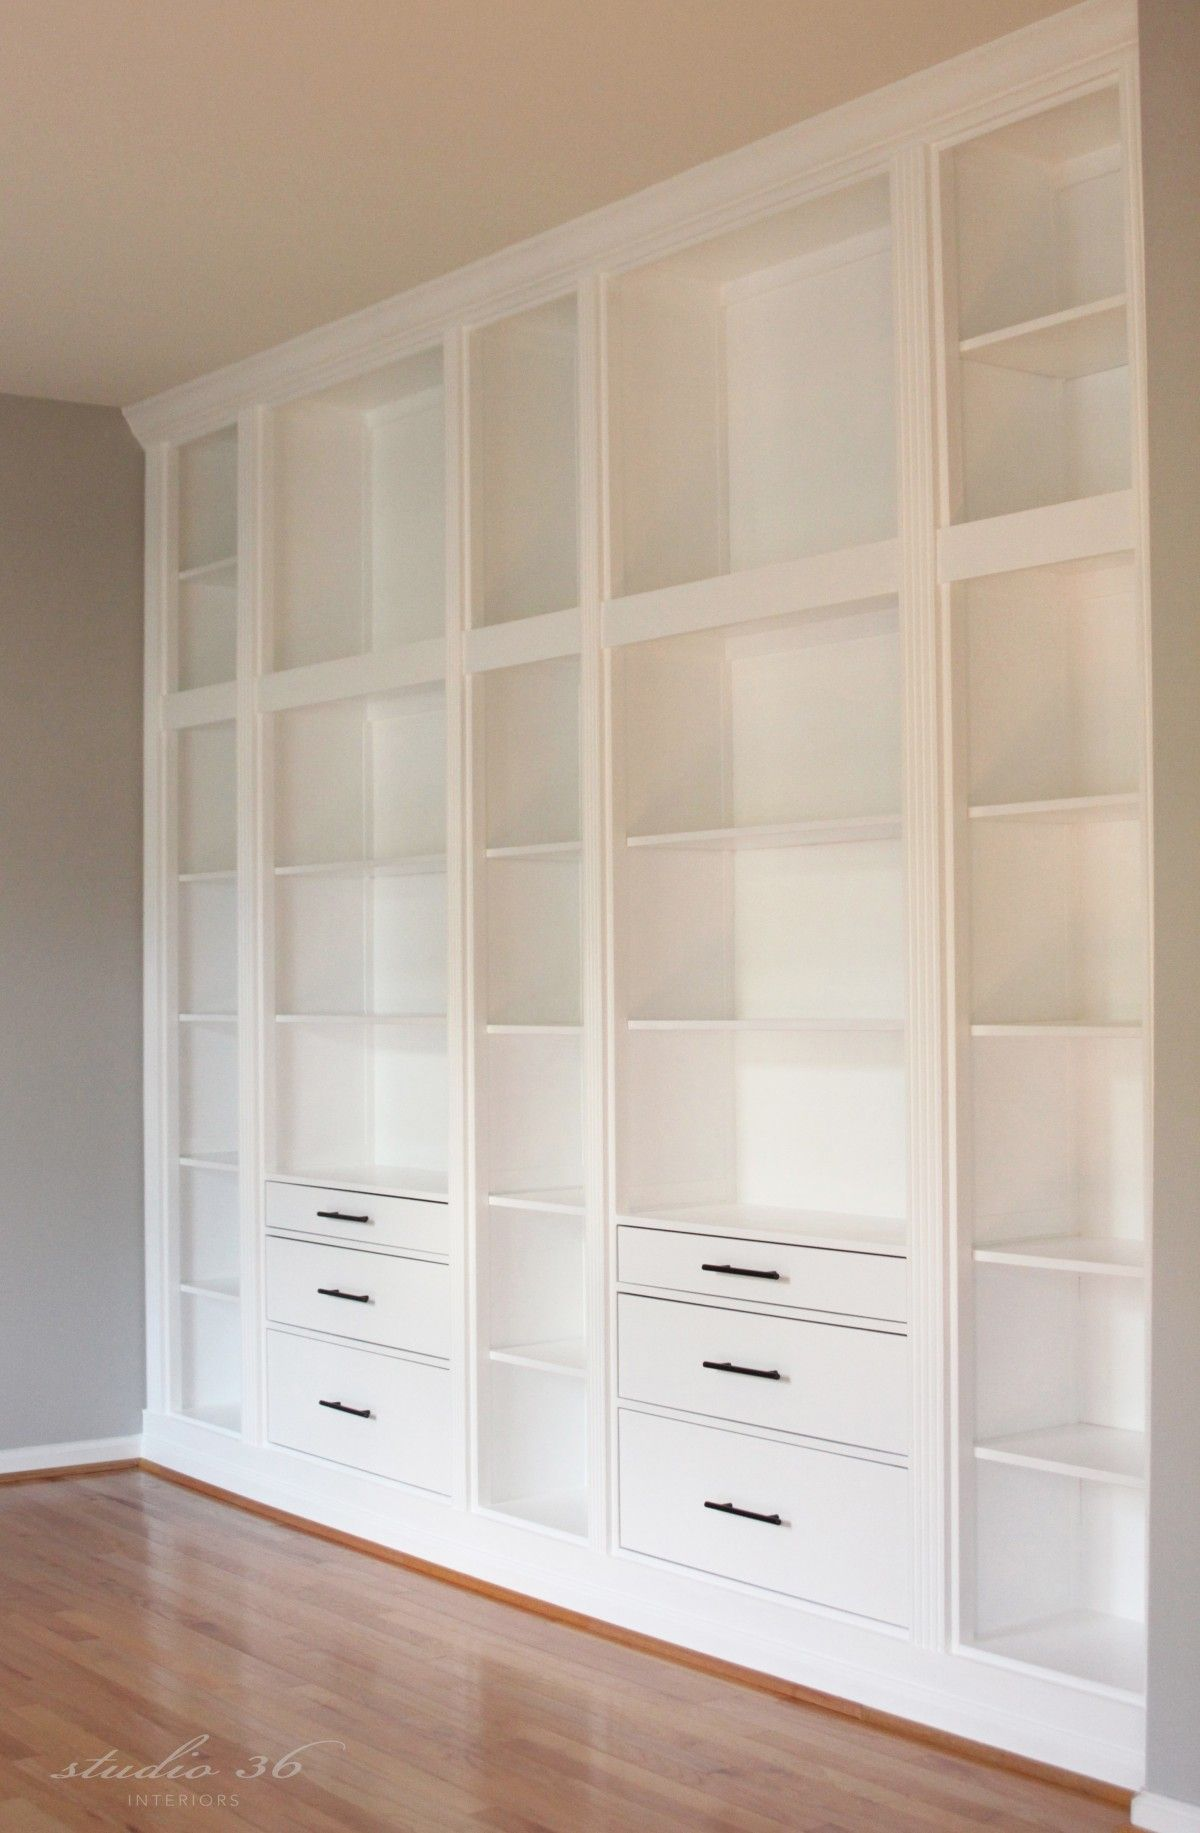 ikea hack built in using hemnes bookcases house plans pinterest m bel wohnzimmer und haus. Black Bedroom Furniture Sets. Home Design Ideas